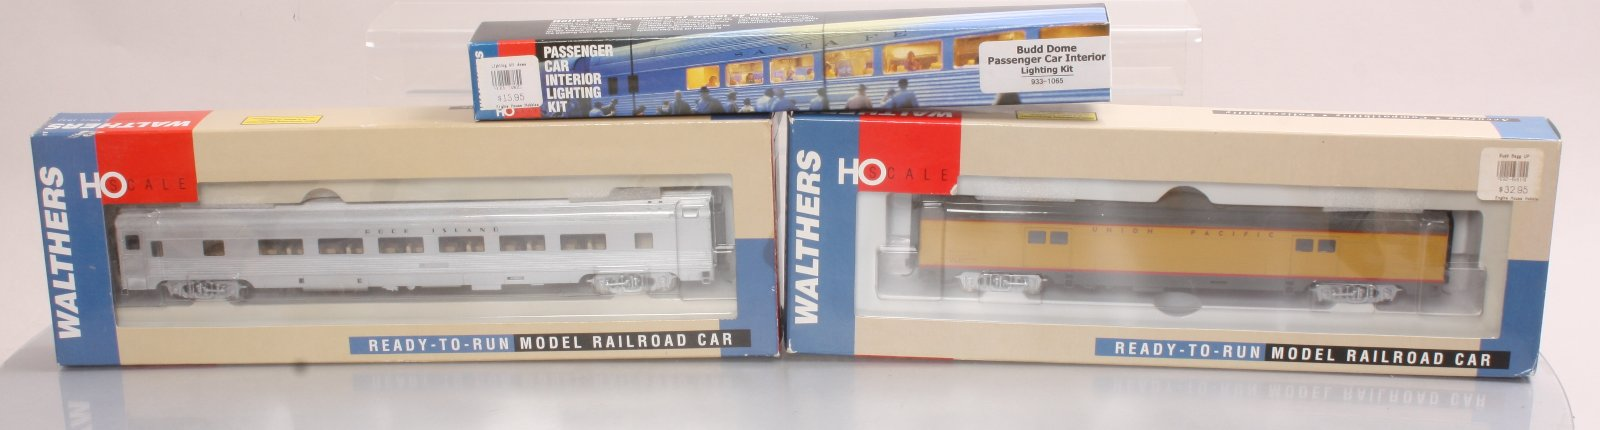 Buy Walthers 932-6414  933-1065, & 932-6312 Passenger Cars